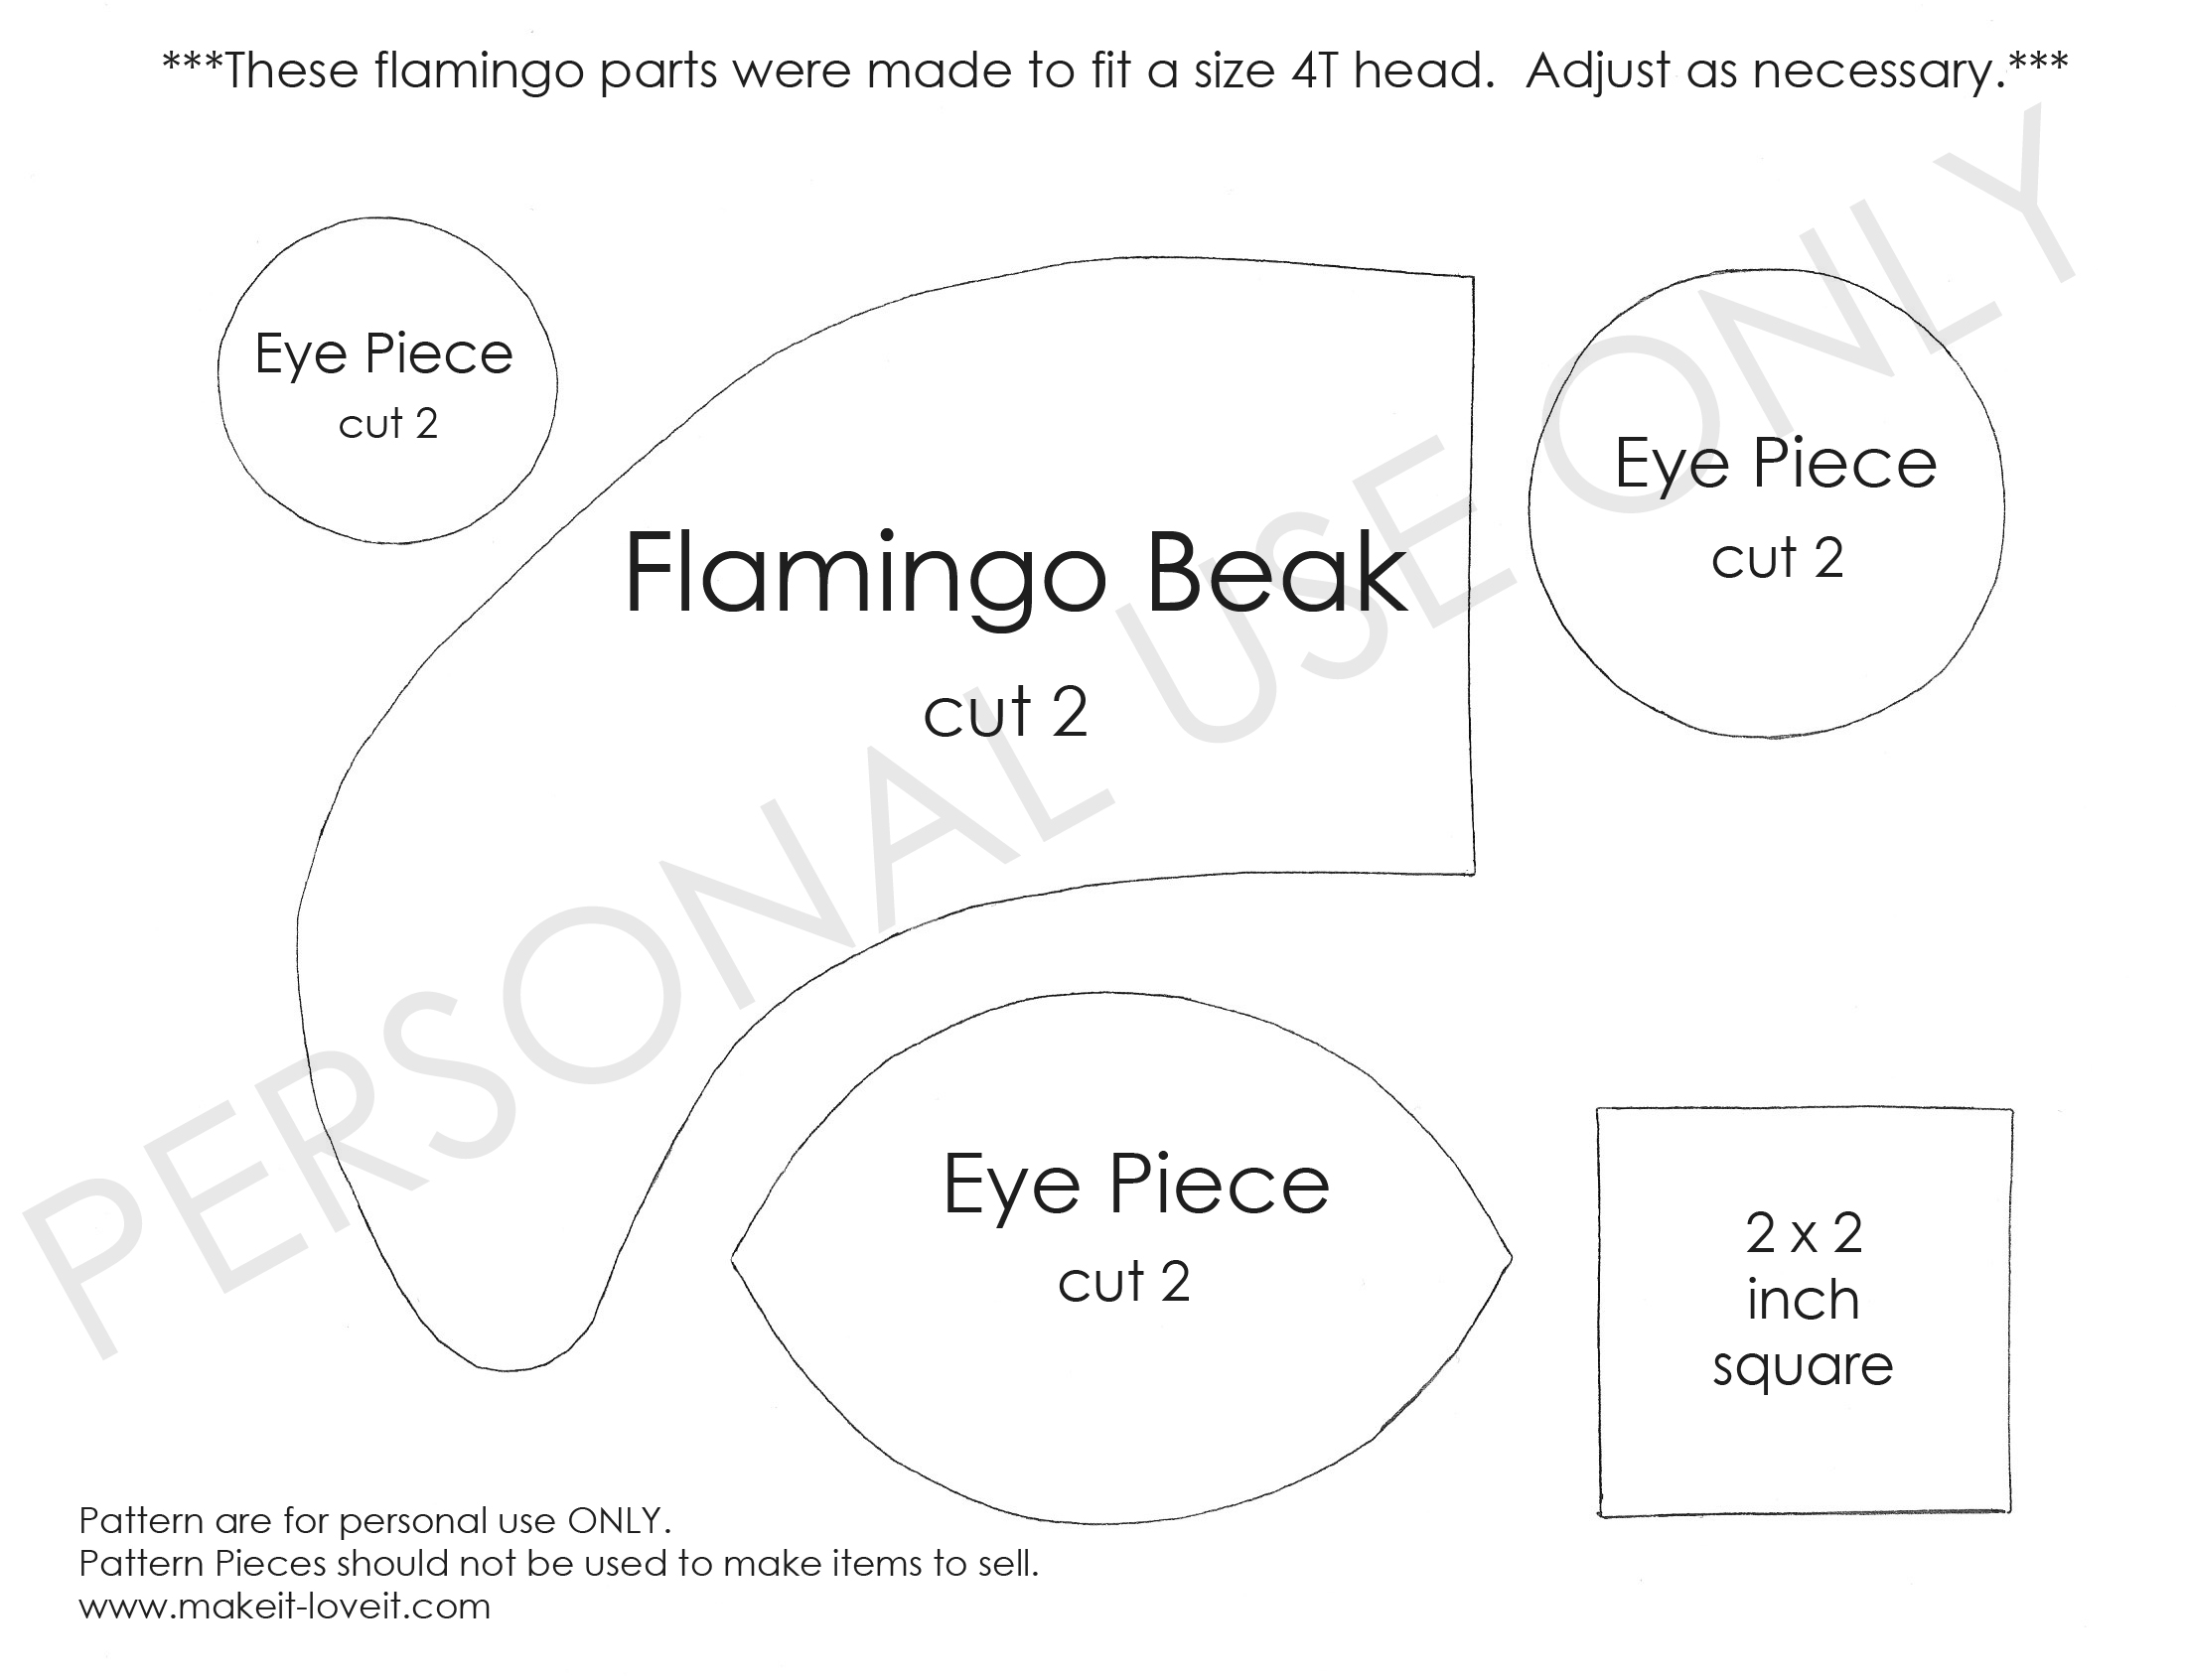 Free pattern pieces make it and love it for Flamingo beak template